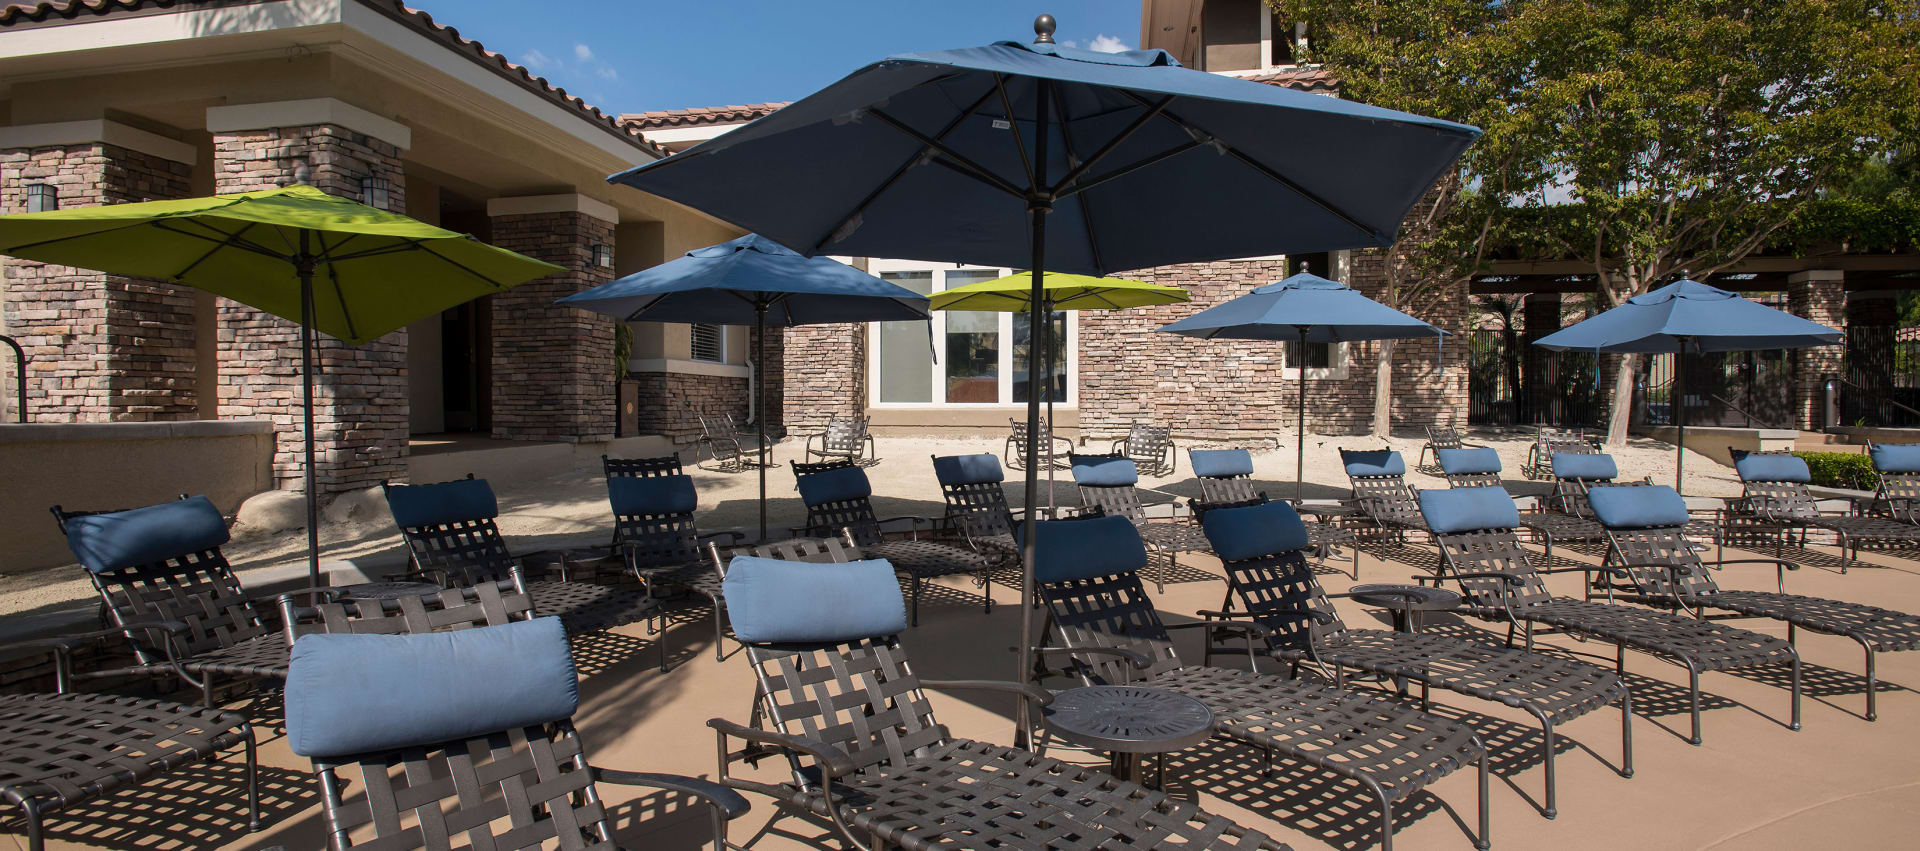 Lounge chairs pool side at Aliso Viejo apartments